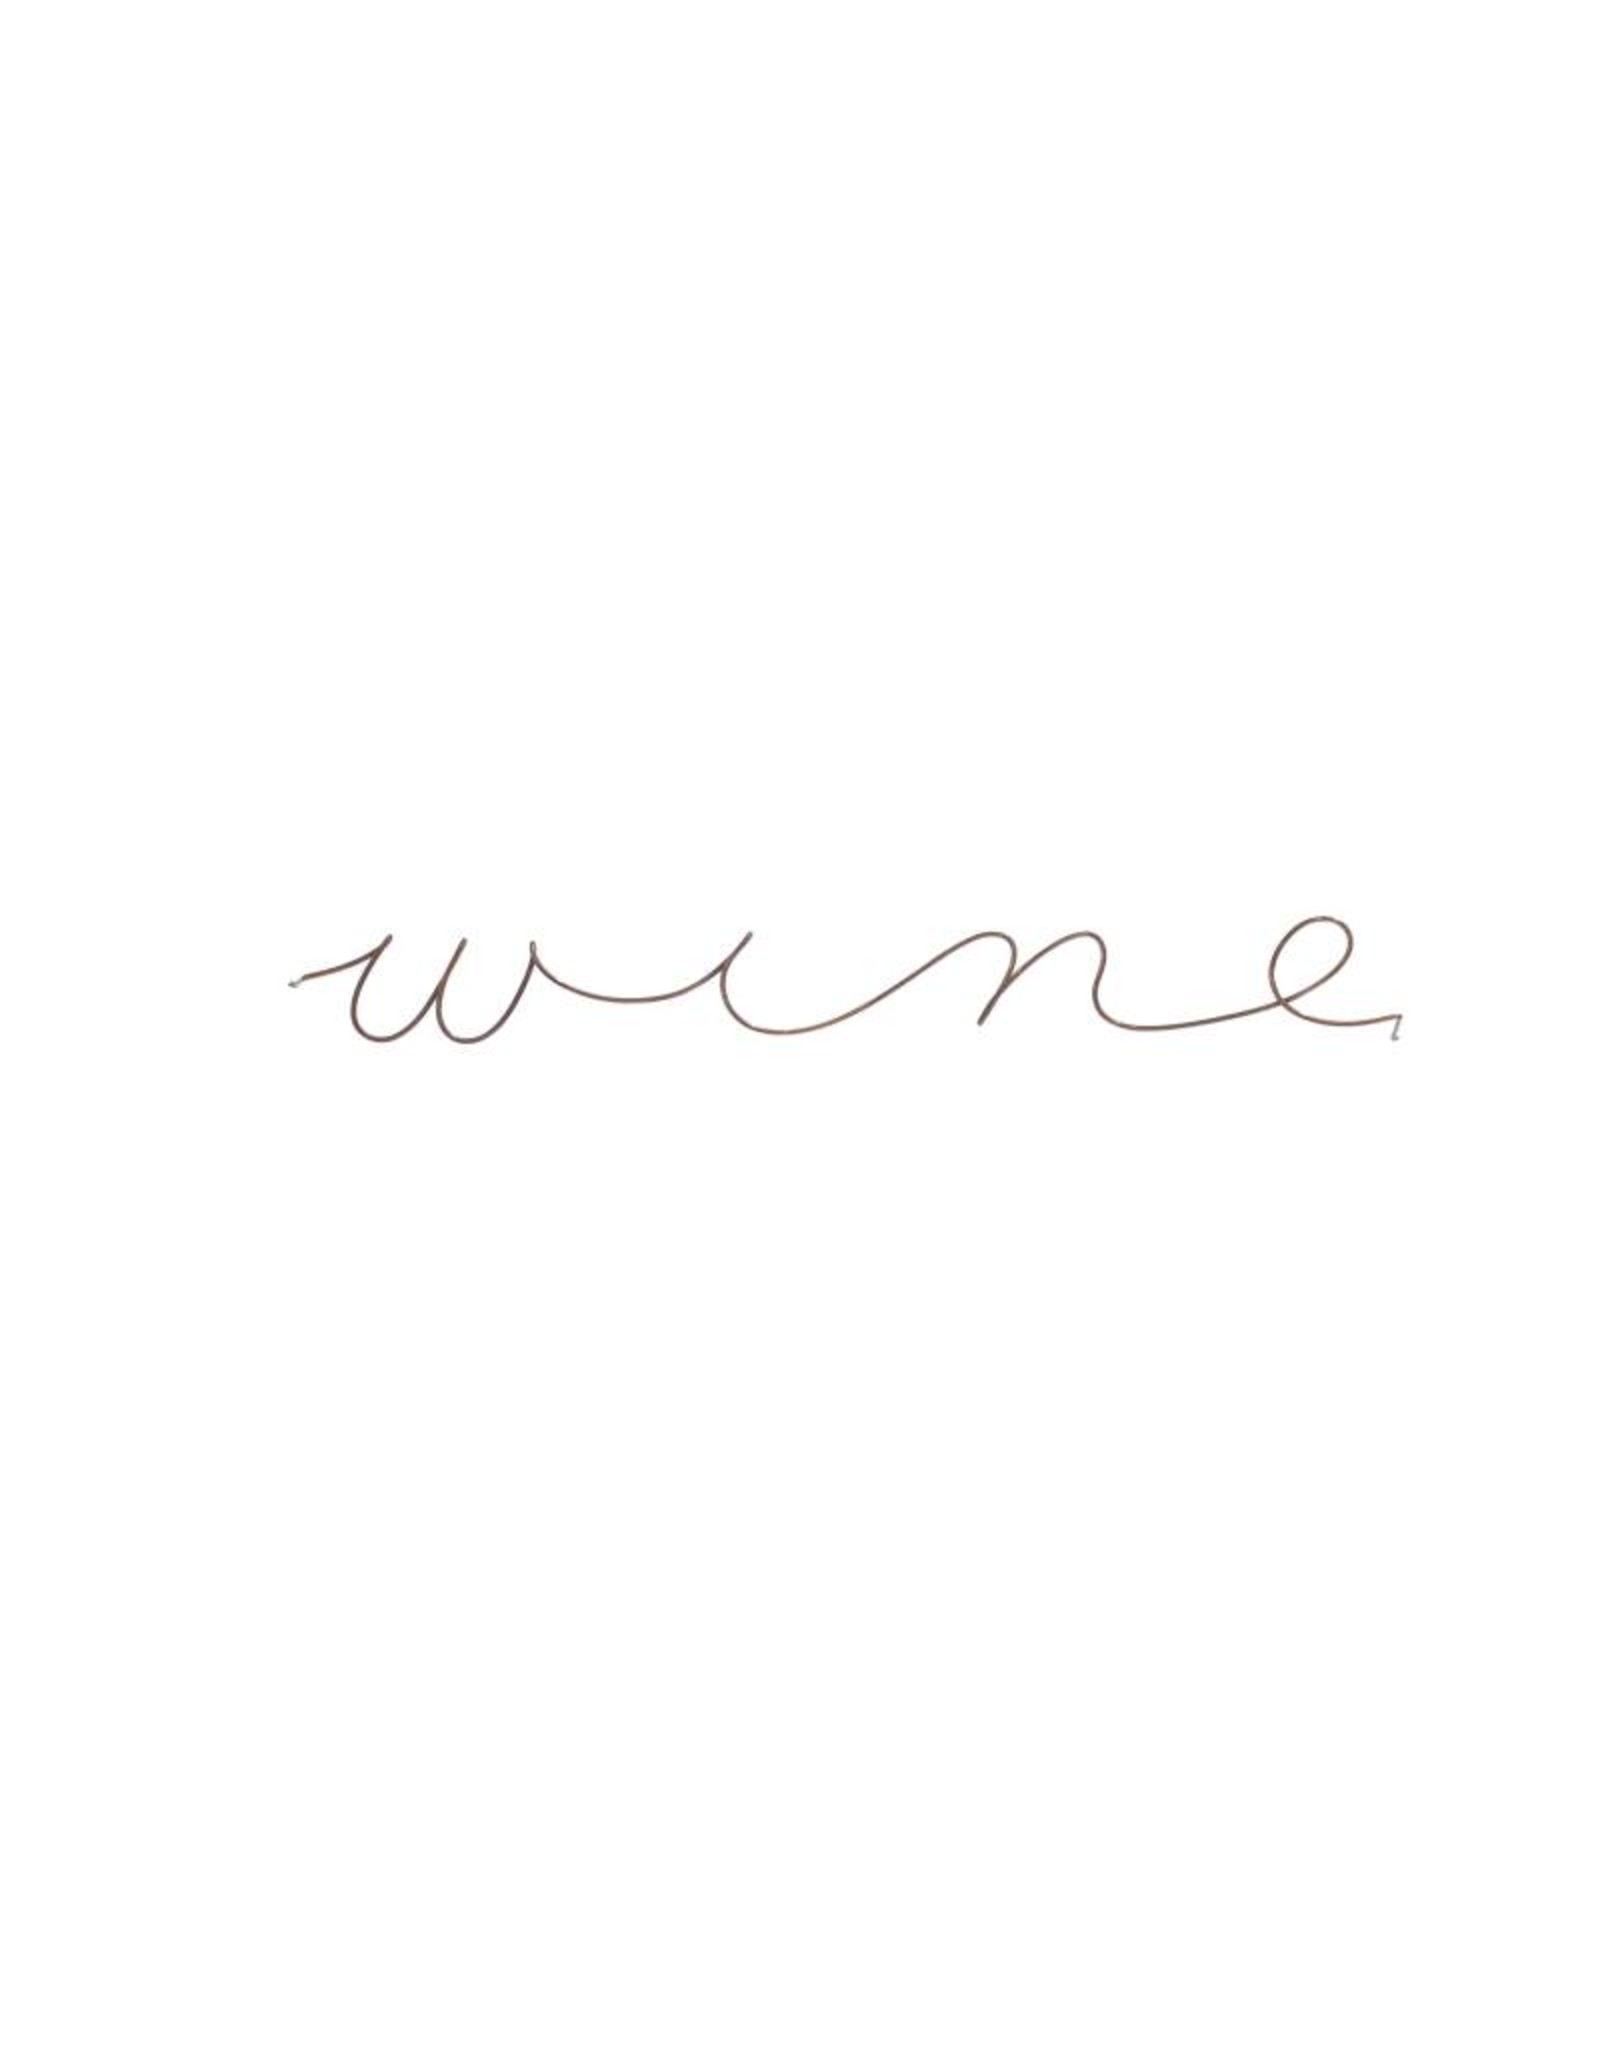 Gauge NYC 'wine' Wire Word Poetic